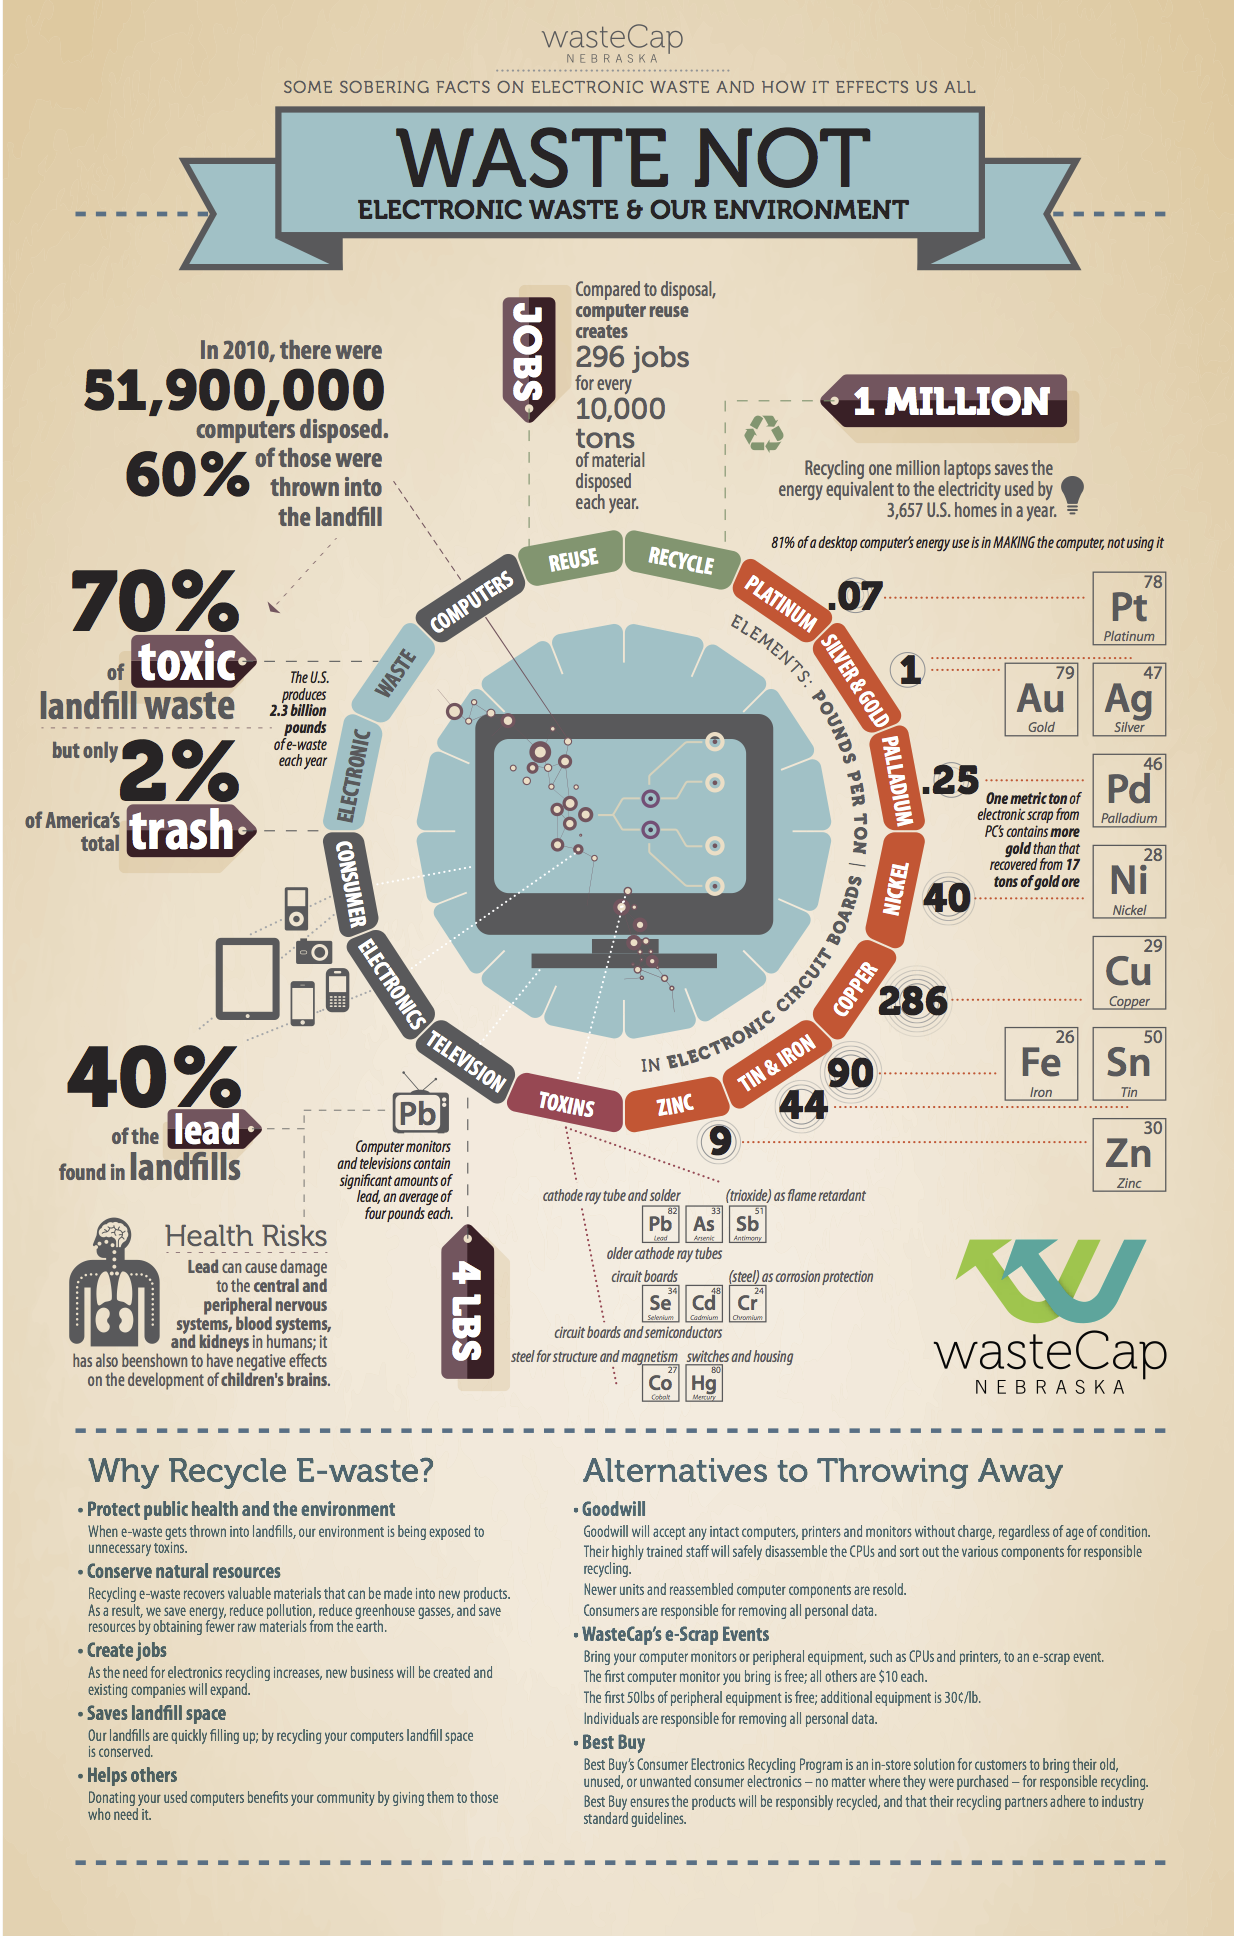 001 Electronic Recycling Infographic Recycling, composting